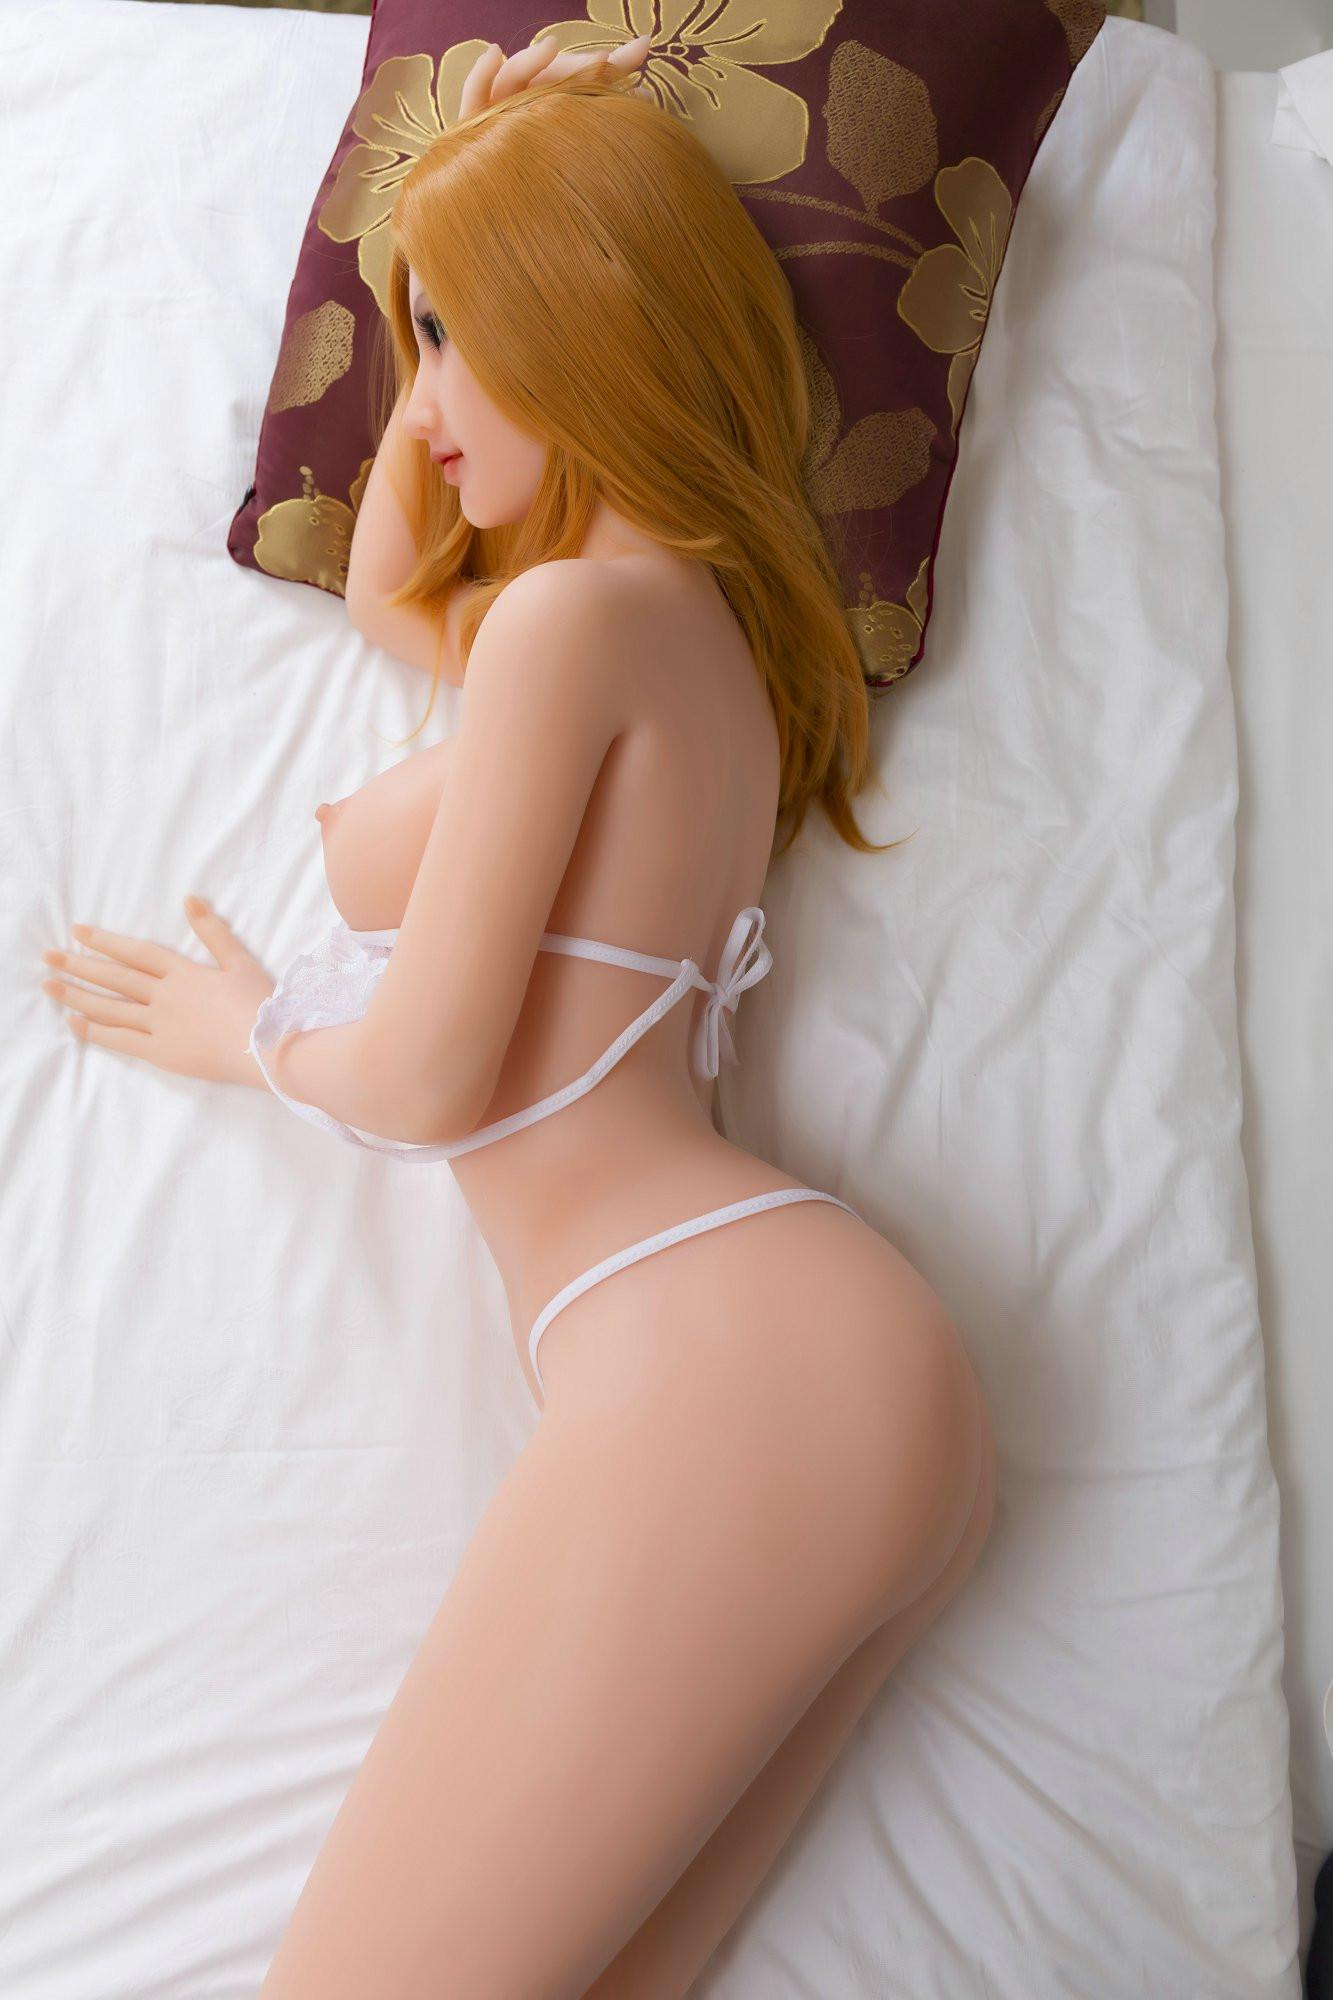 Flat chest sex doll video from sexdollonline